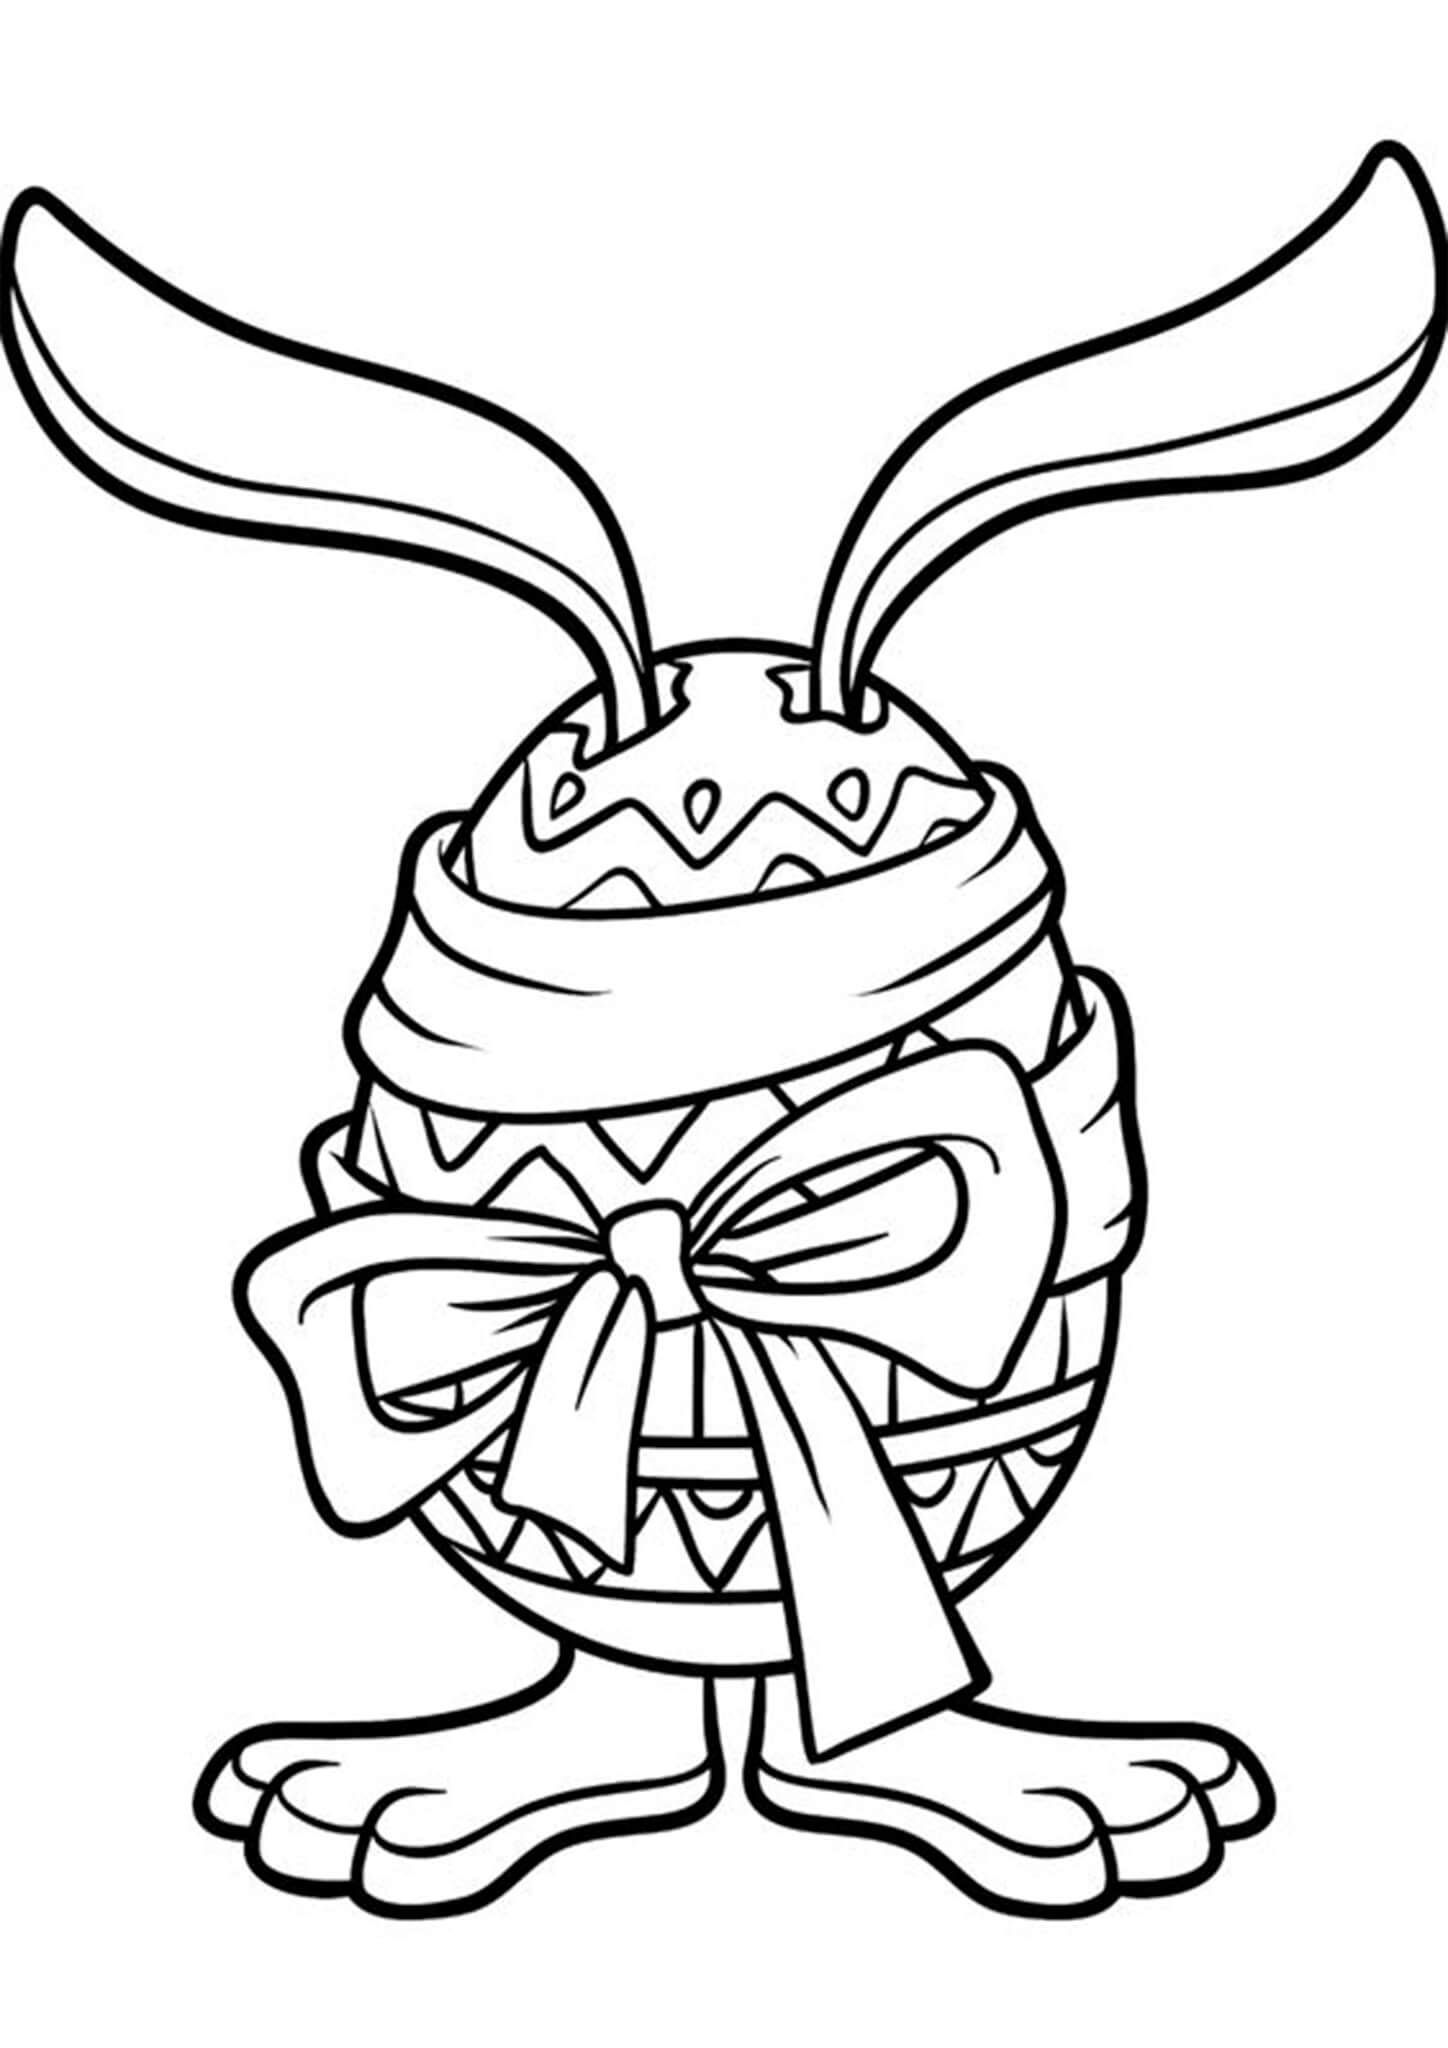 Free Easy To Print Easter Coloring Pages Tulamama In 2021 Easter Coloring Pages Printable Free Easter Coloring Pages Easter Colouring